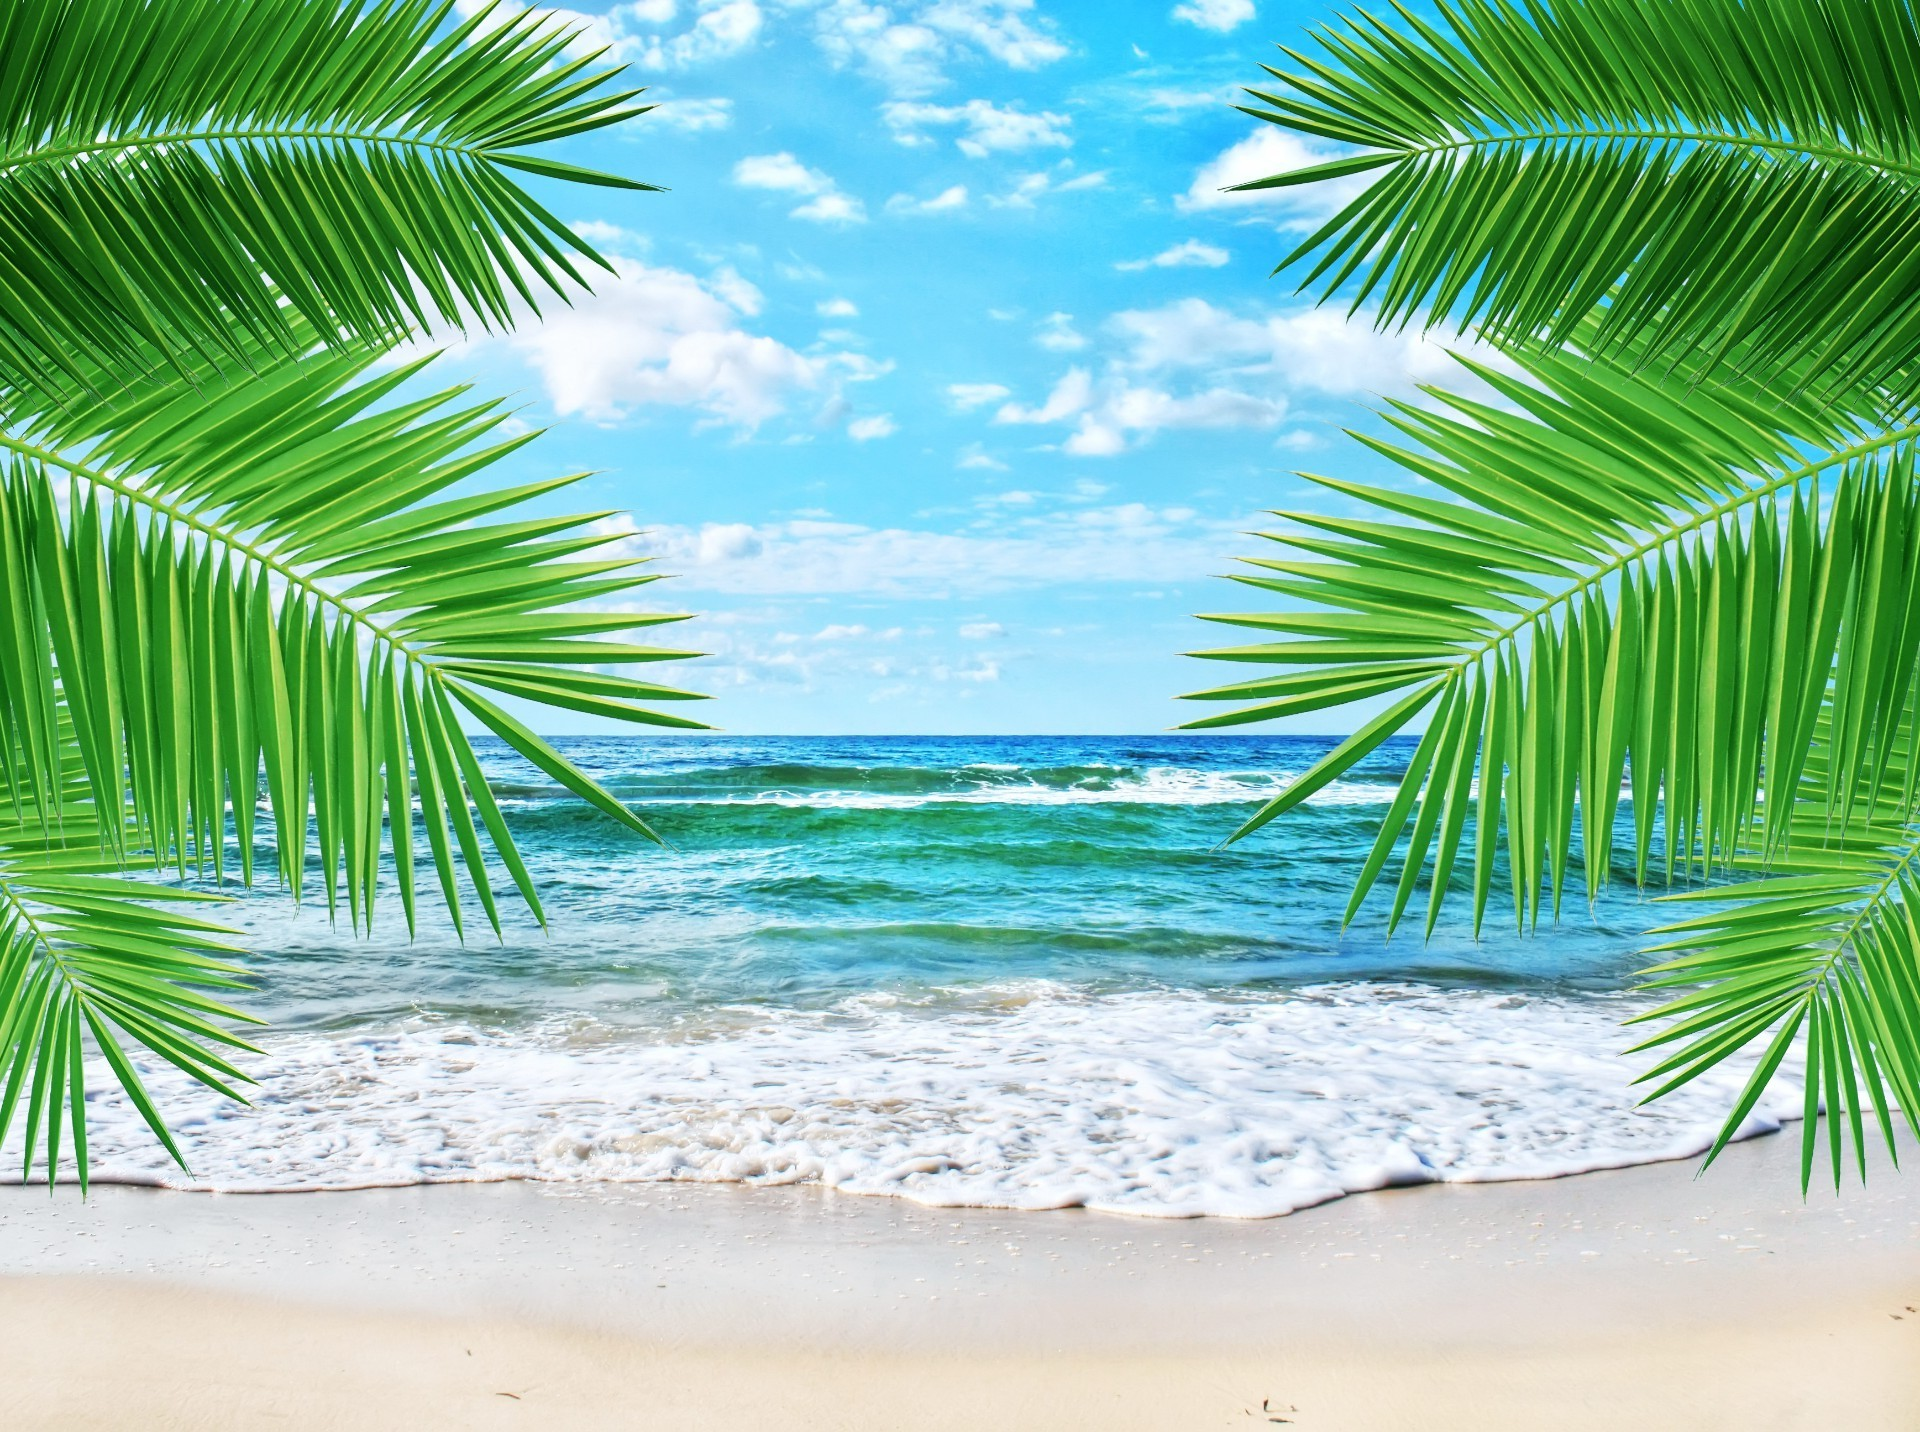 Sea and palm leaves